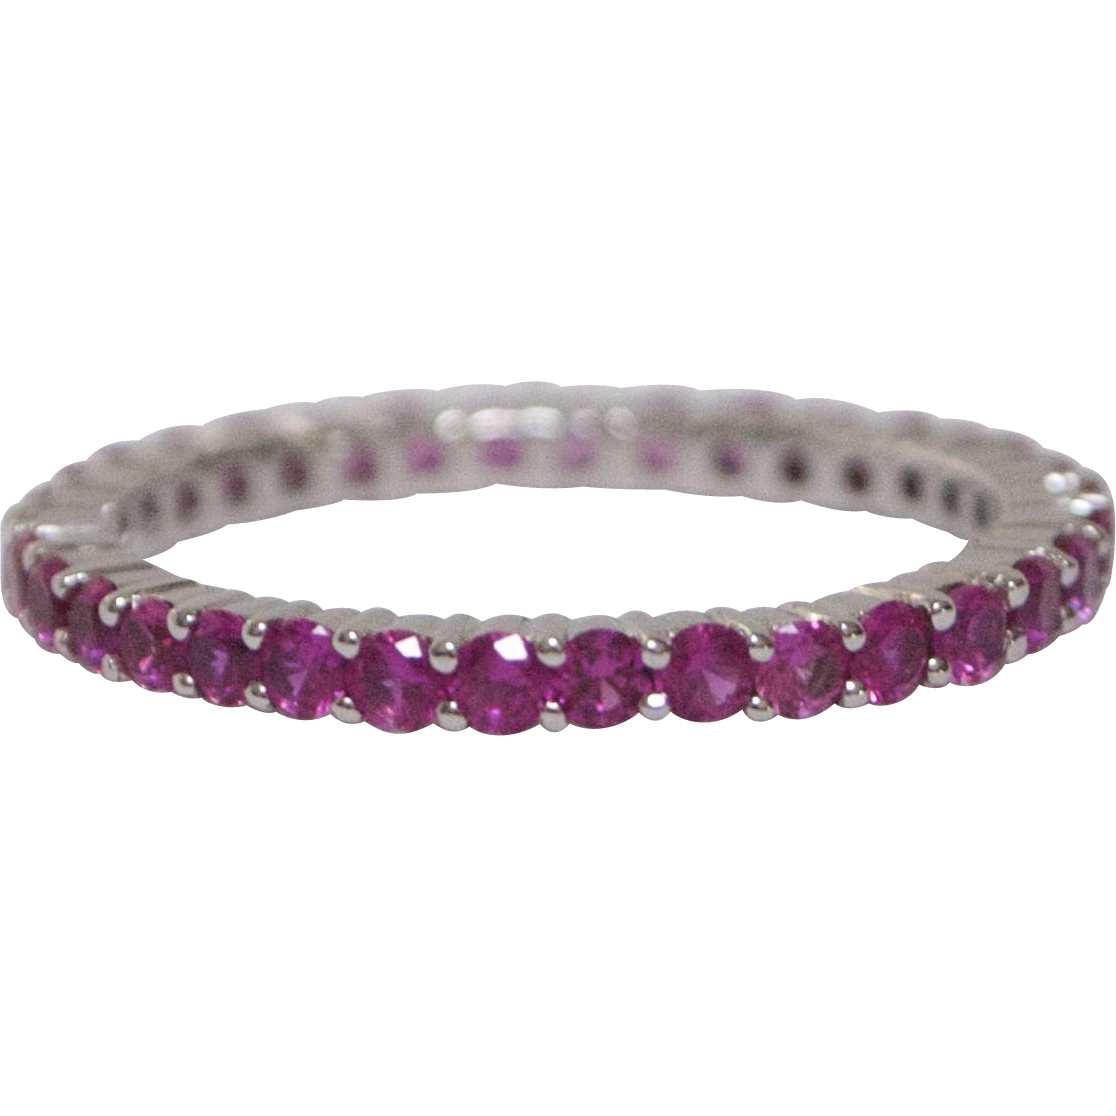 18kt white gold and pink sapphire eternity band from